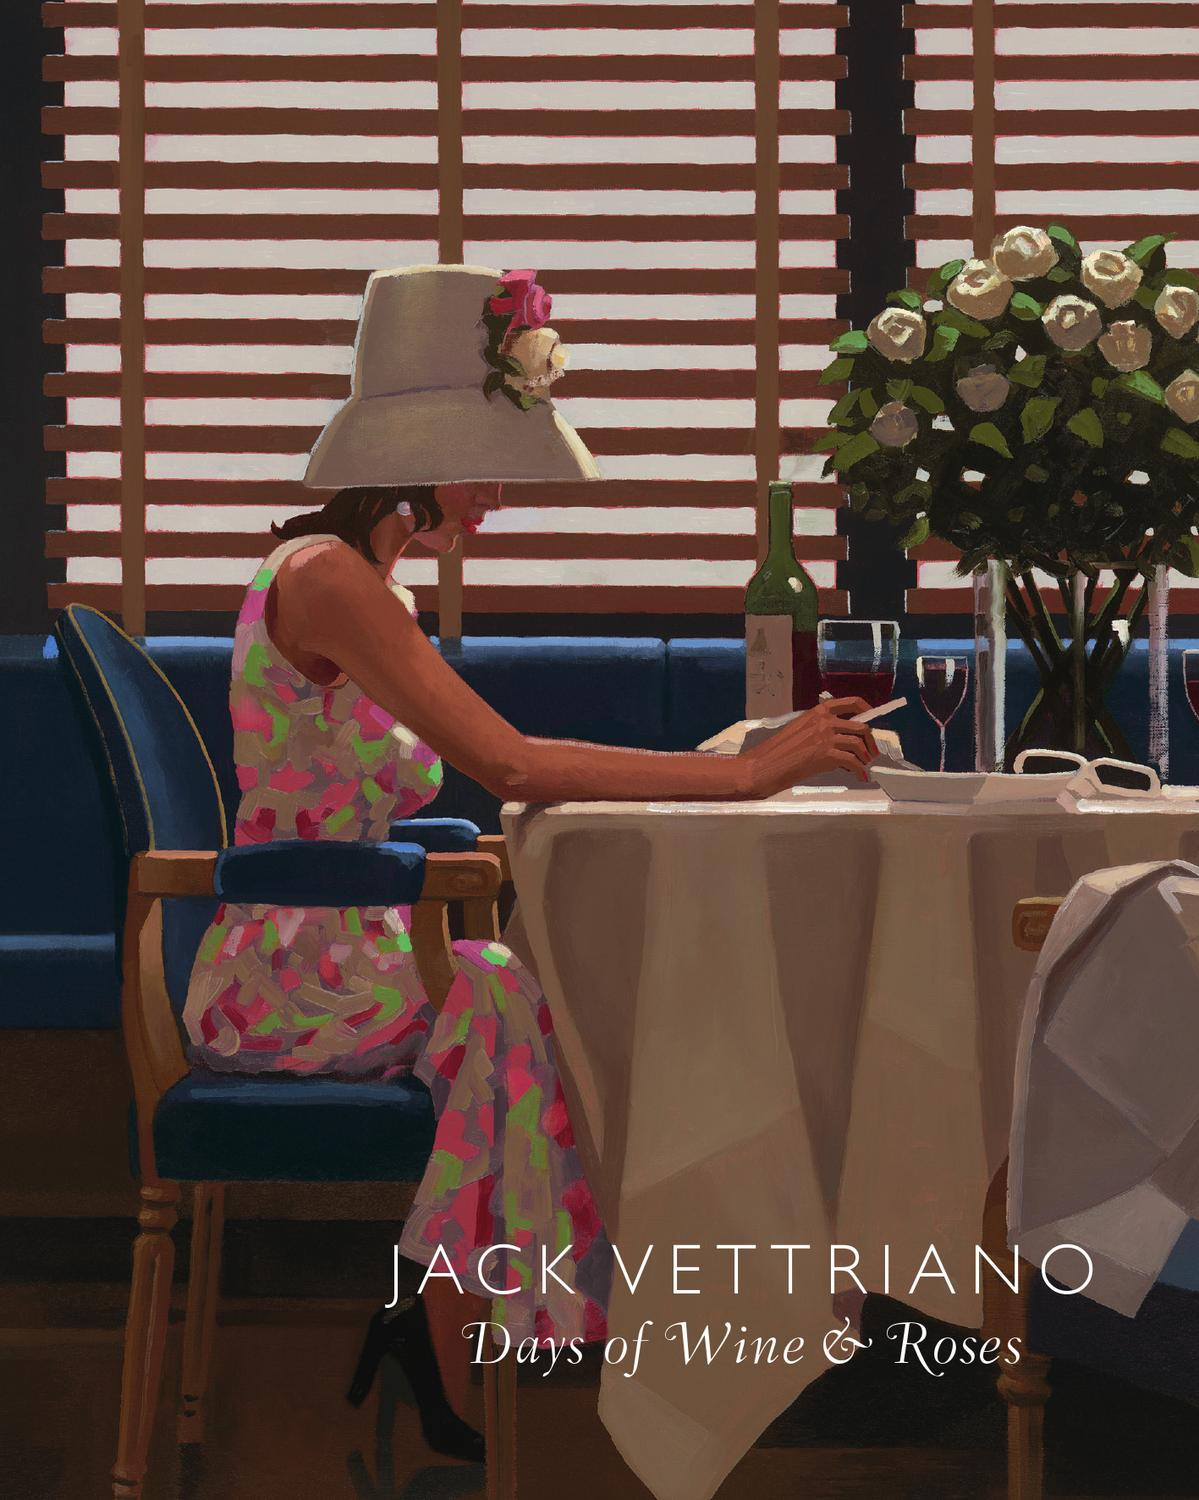 Jack  Vettriano  Days  of  Wine  and  Roses